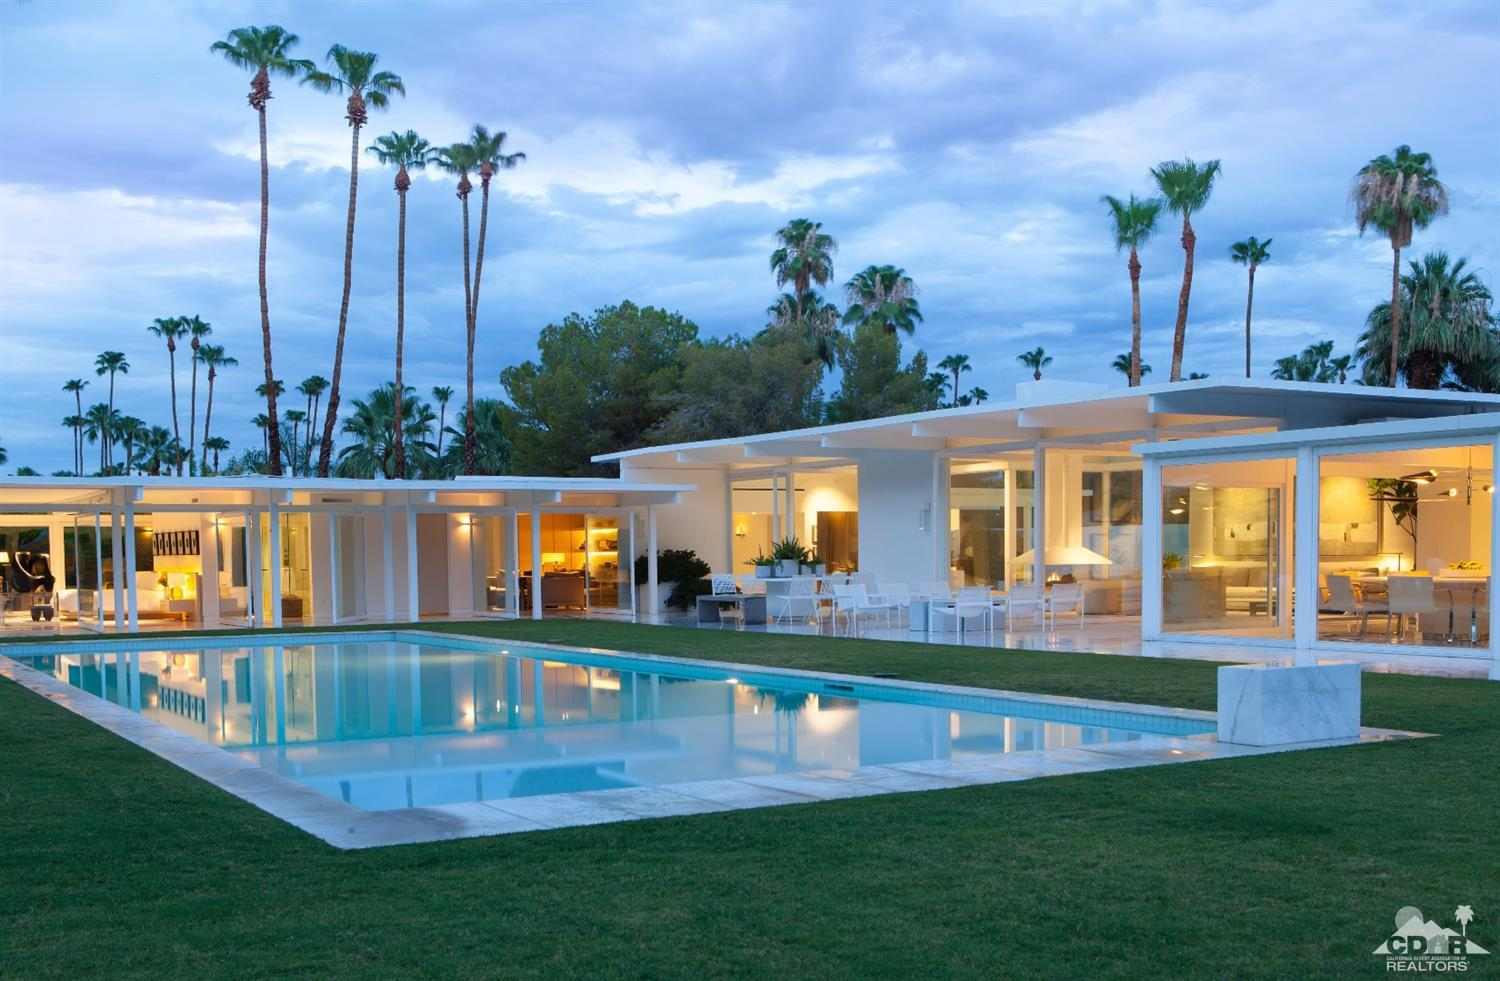 Palm springs midcentury stunner with ties to hollywood for New mid century modern homes palm springs